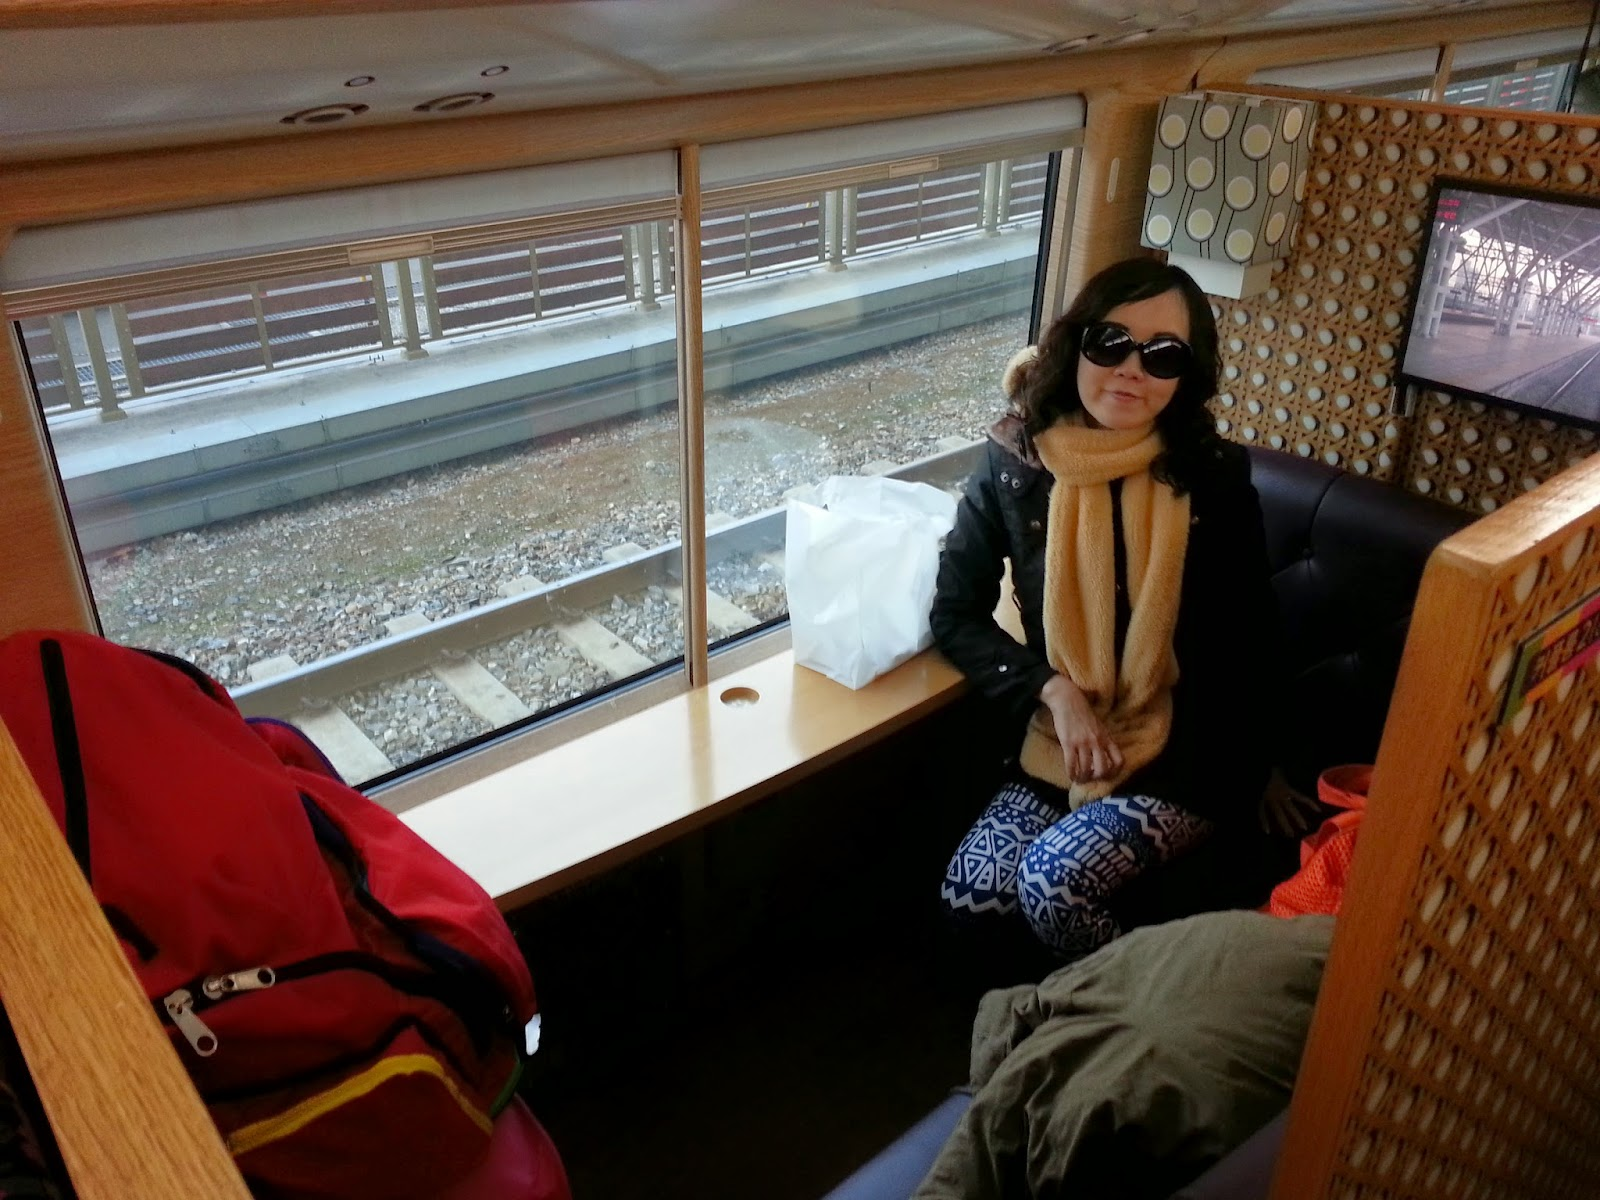 [Korea O-Train] Railroad trip from Seoul to Punggi | meheartsoul.blogspot.com